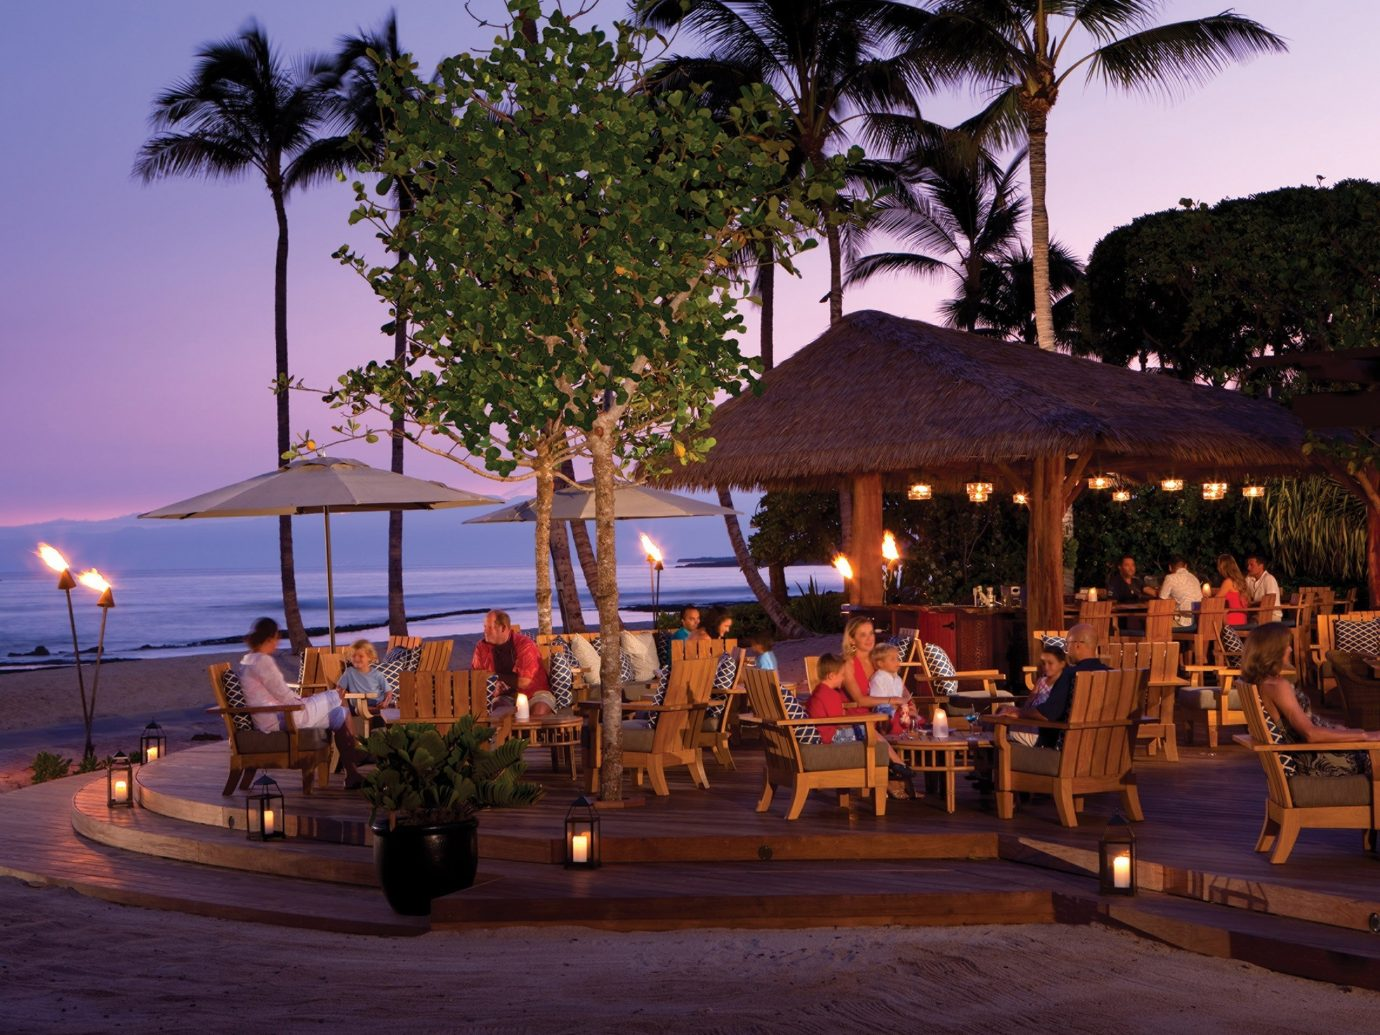 Hotels outdoor sky tree Resort vacation people evening Beach restaurant group arecales several